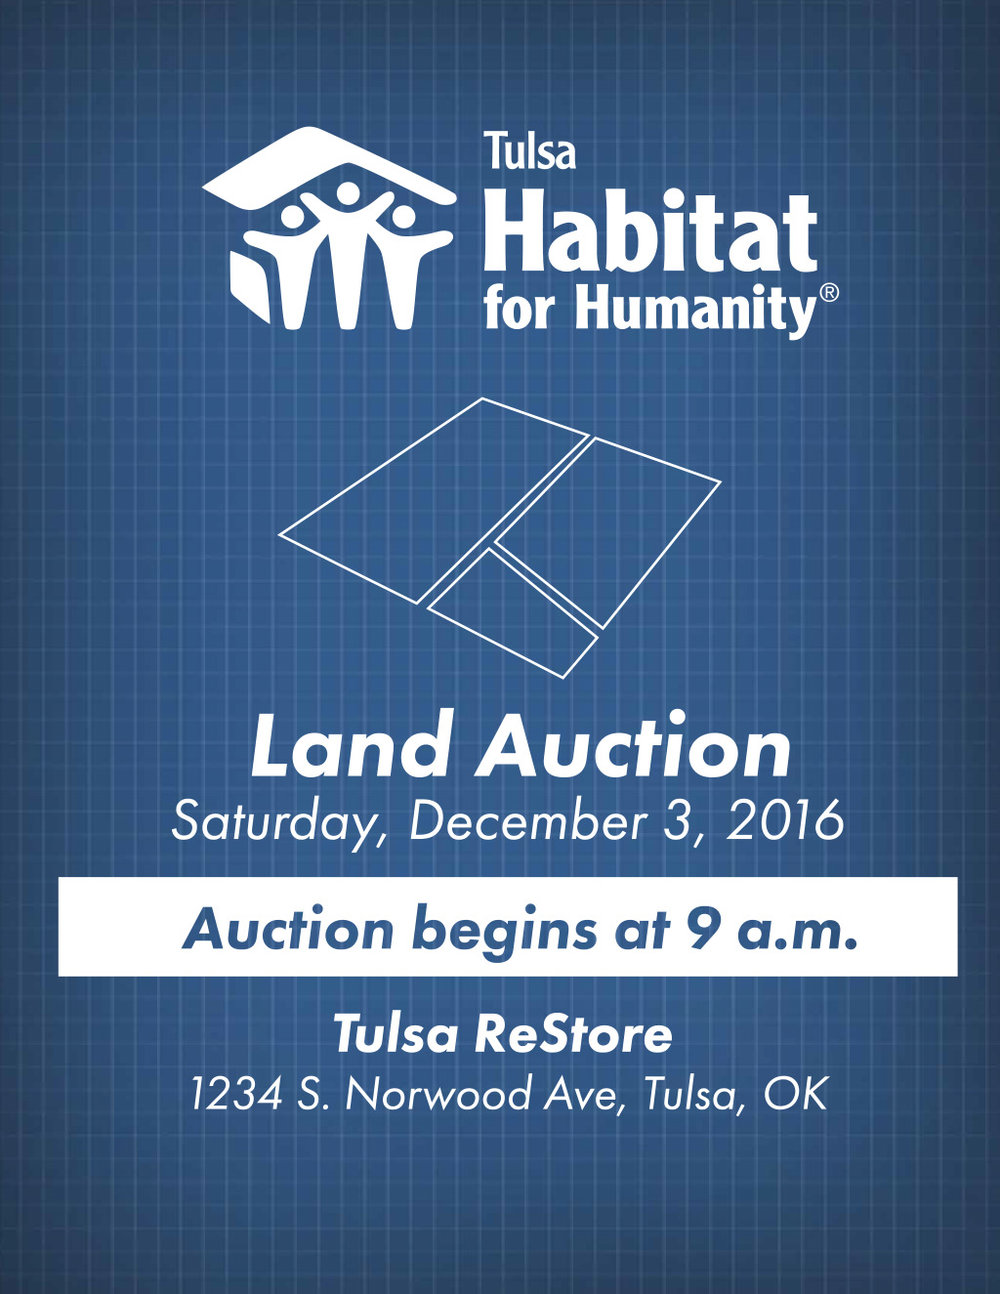 Clark howard sponsoring habitat for humanity house in tulsa - Tulsa Habitat For Humanity Is Holding A Land Auction On December 3 At The Restore The Bidding Will Begin At 9 A M For More Details Please Click On The